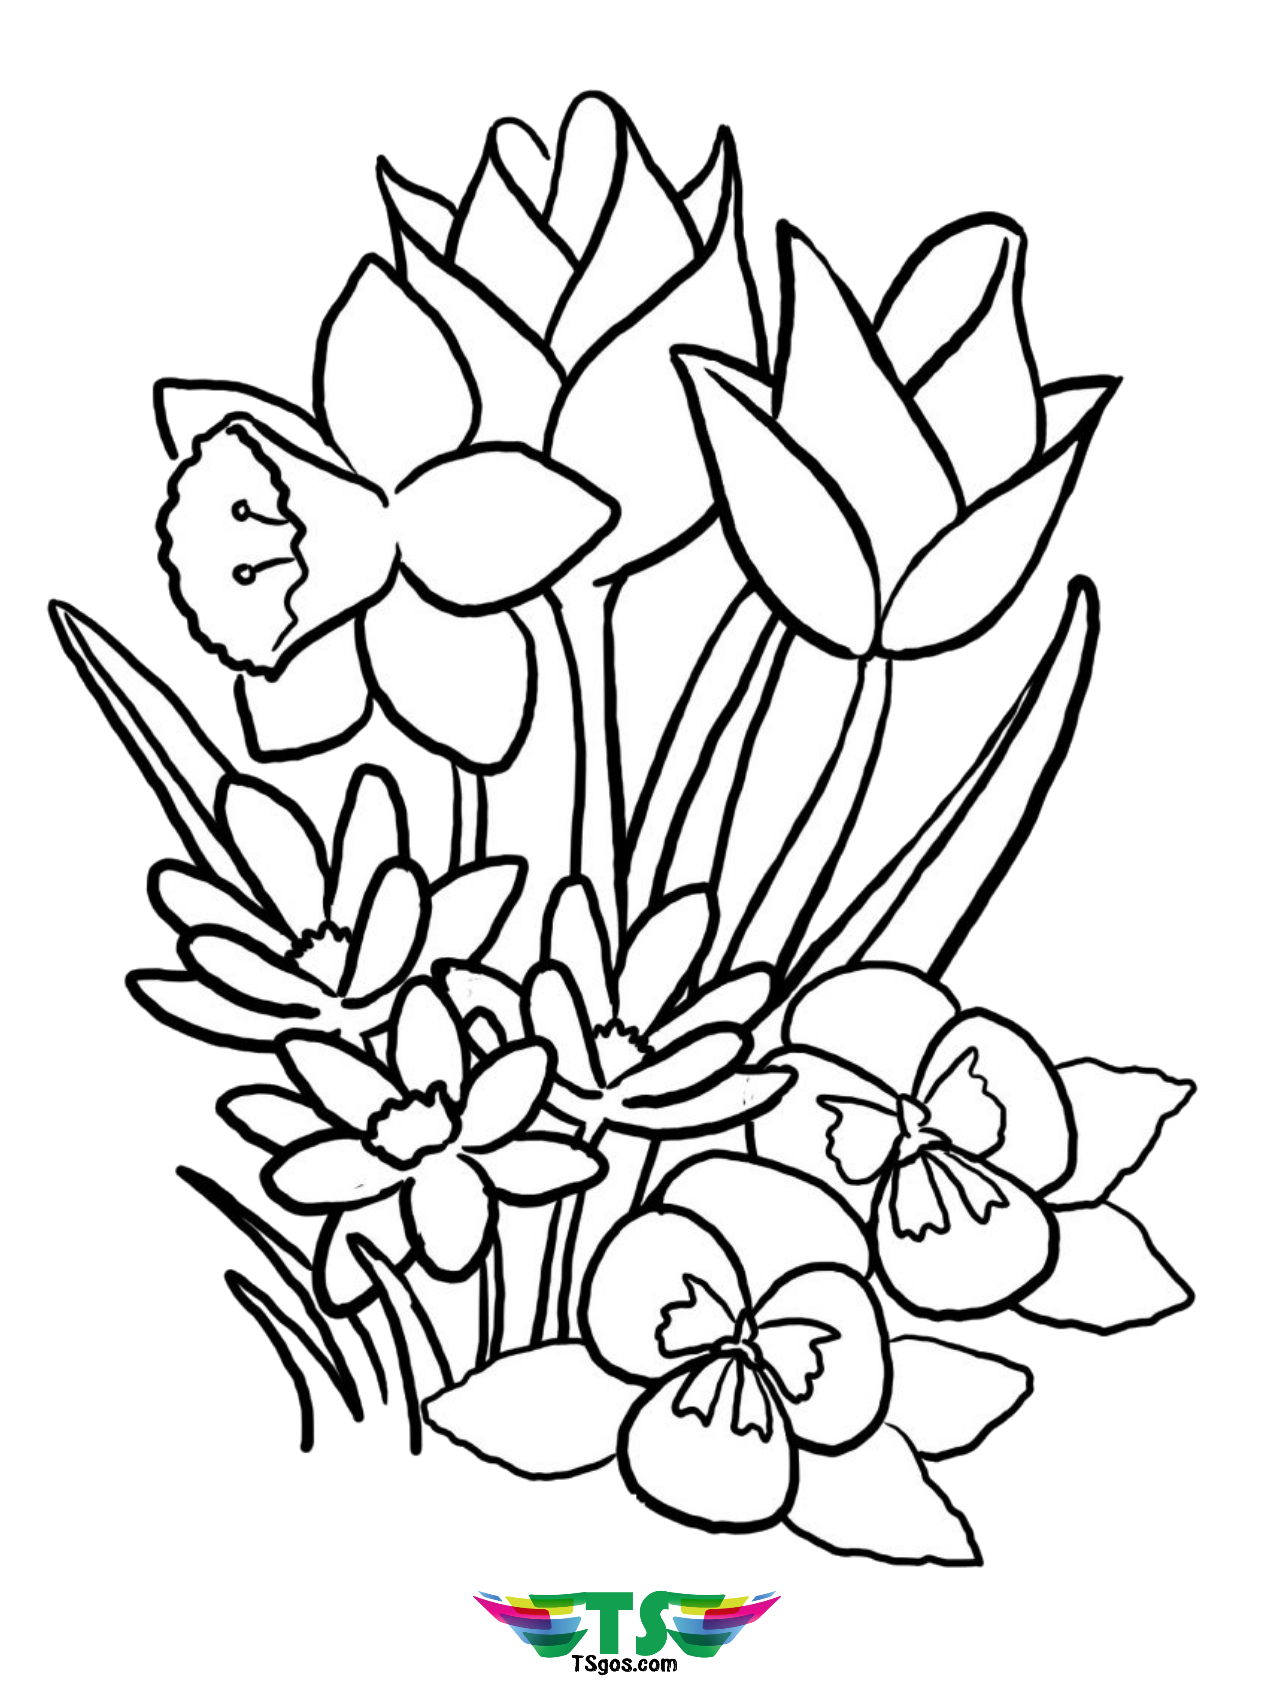 free flower coloring pages for adults realistic bouquet of flowers in vase coloring page for for coloring pages flower free adults